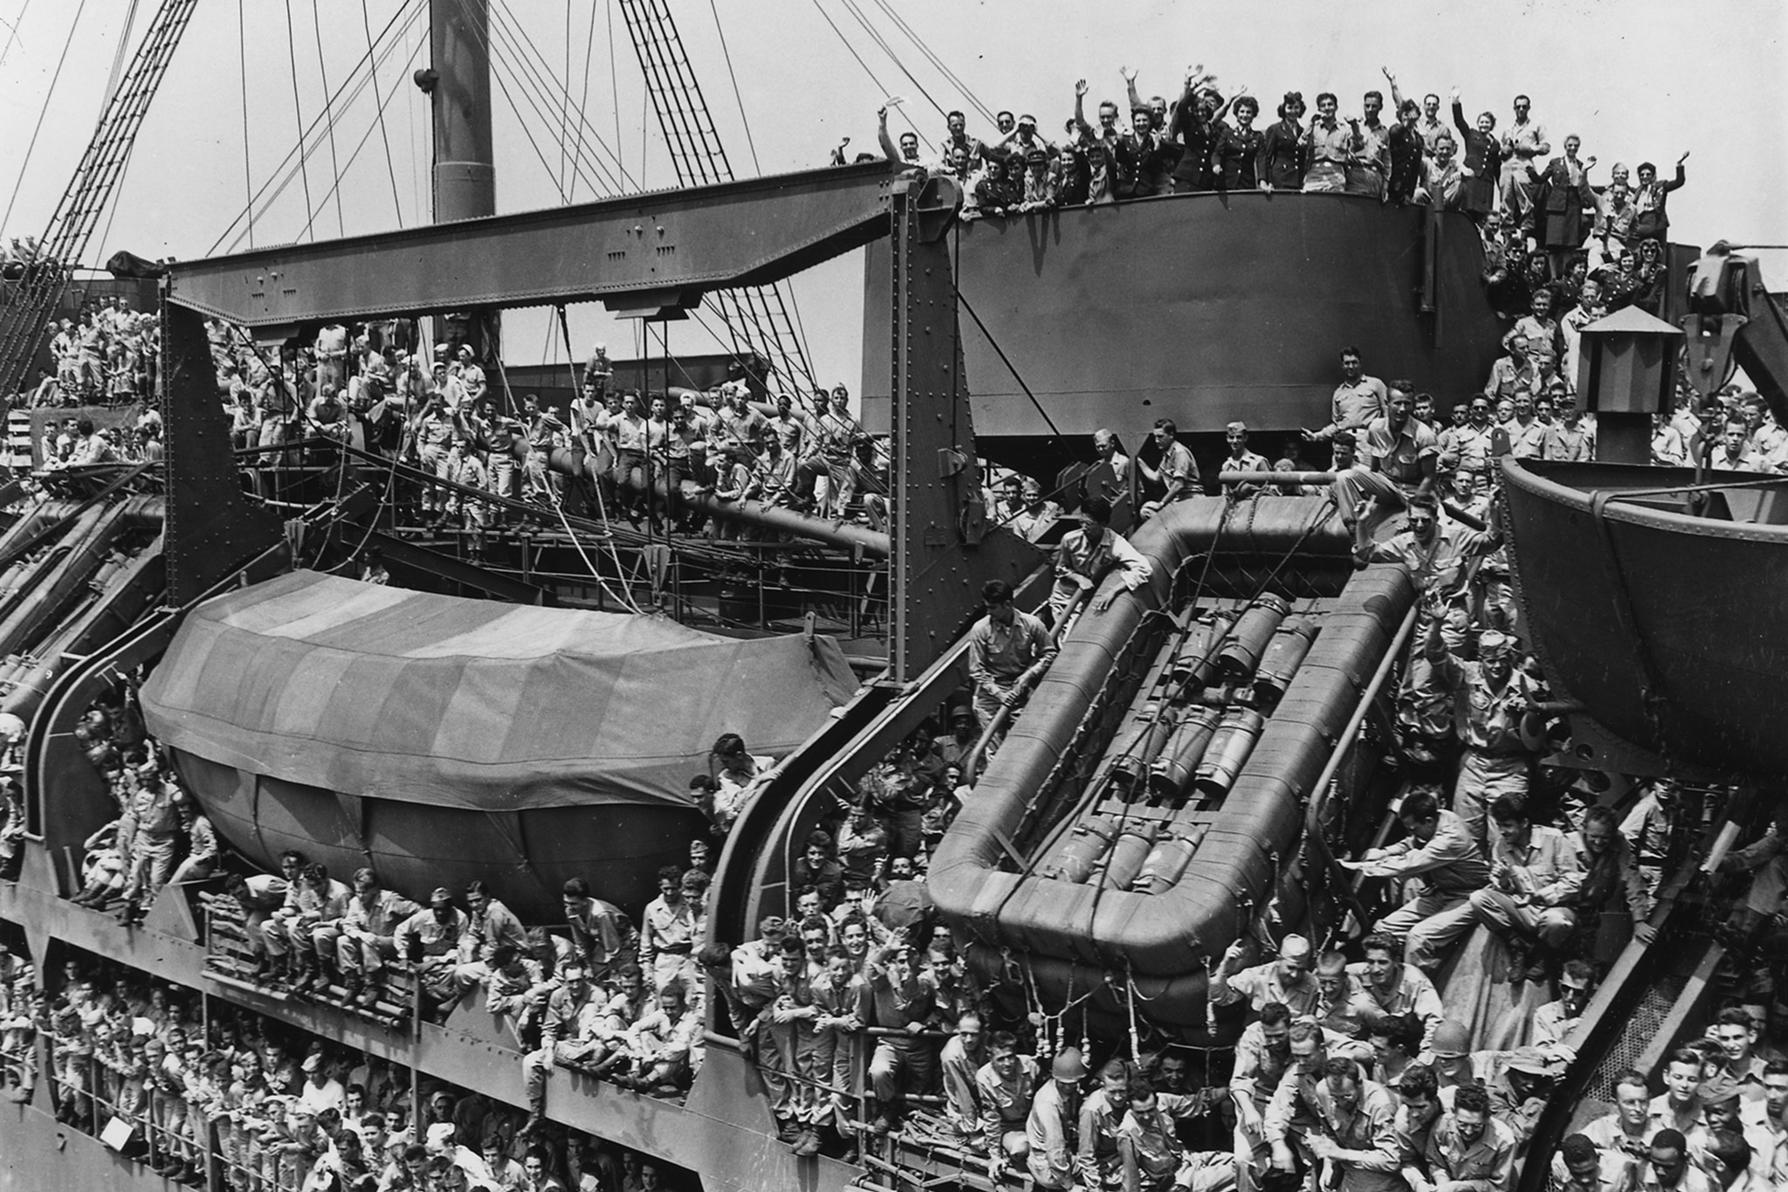 U.S. troops return to New York aboard the USS General Harry Taylor from their service in World War II. Veterans of that war later led in the campaign to establish the U.S. Institute of Peace. (National Archives)